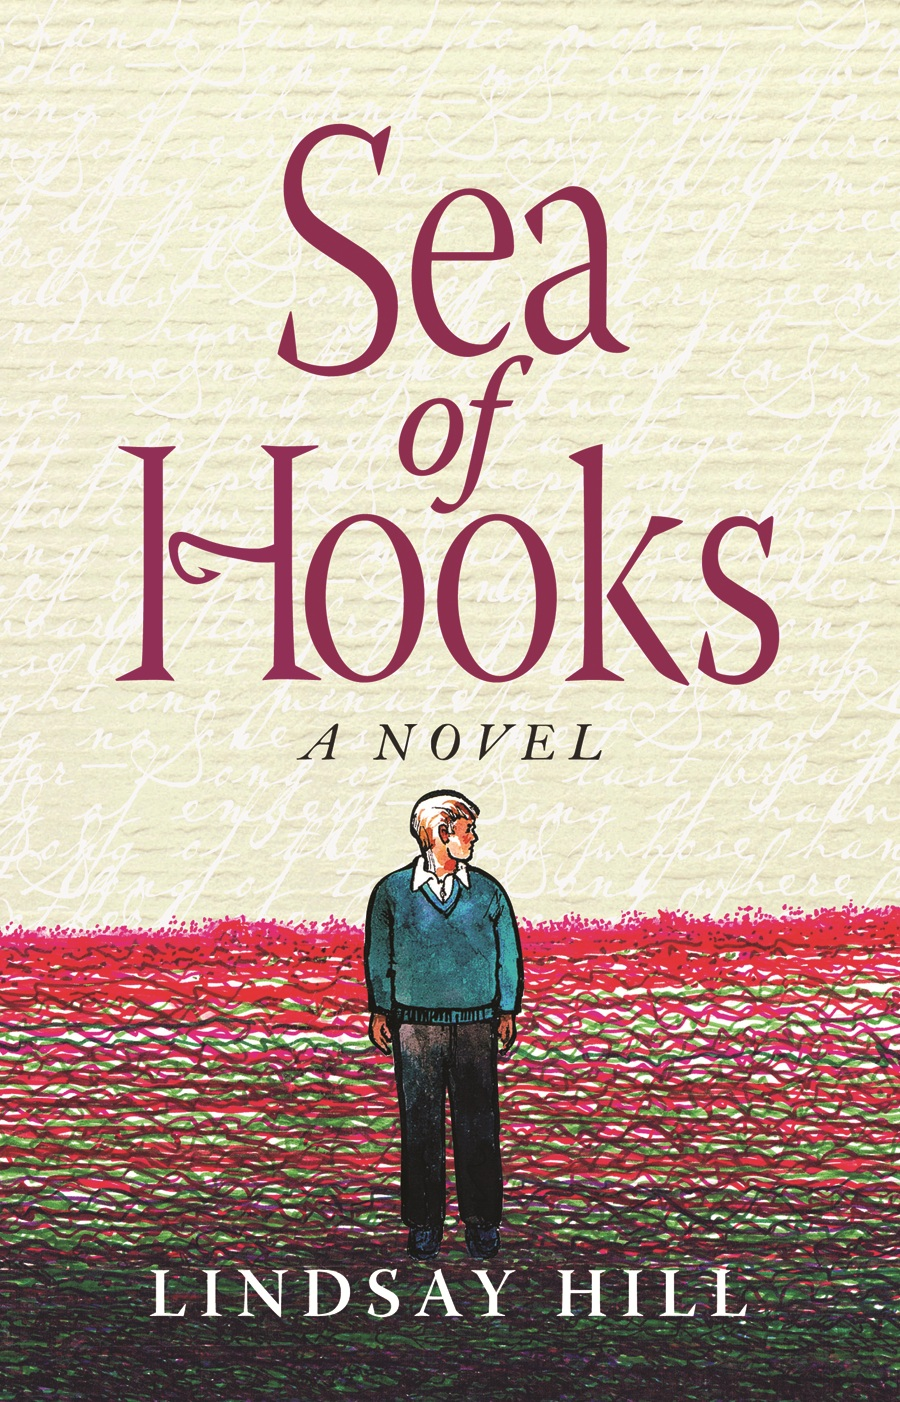 author interview lindsay hill discusses his debut novel sea of sea of hooks